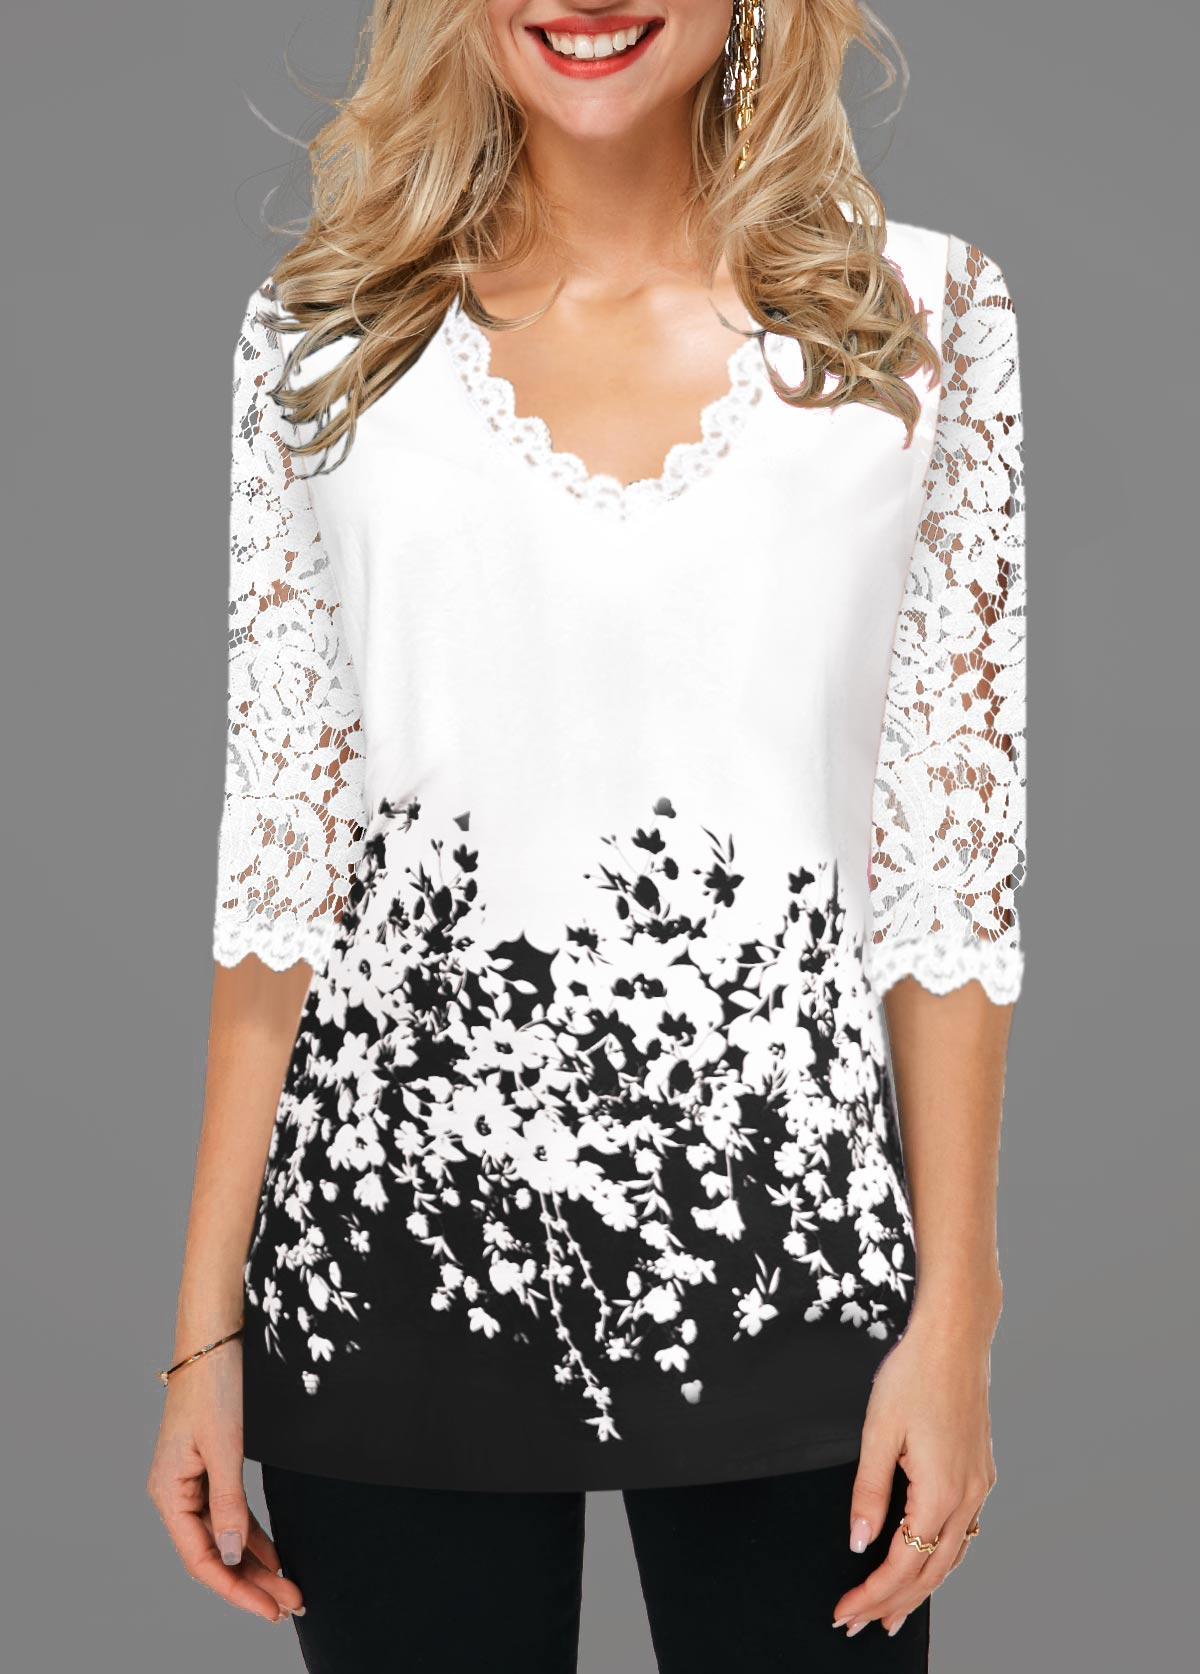 Lace Detail Floral Print Contrast Panel T Shirt